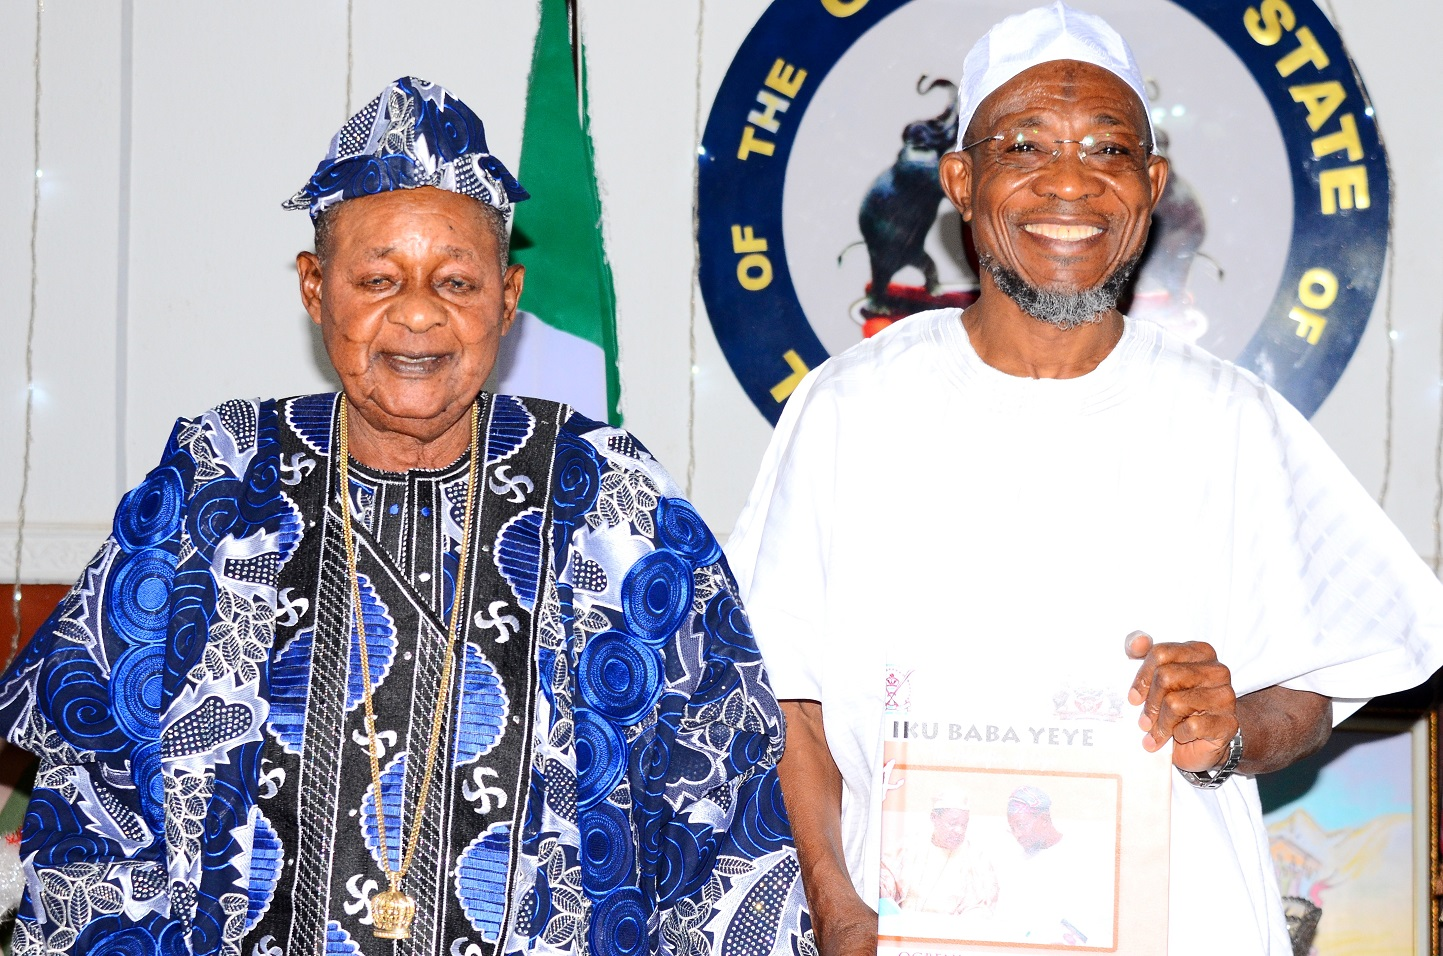 Governor State of Osun, Ogbeni Rauf Aregbesola and the Alaafin of Oyo, Oba Lamidi Olayiwola Adeyemi, after being conferred with the title of Omoluabi of Yorubaland by the Paramount ruler, at Government House, Osogbo, on Tuesday 05/1/2016.